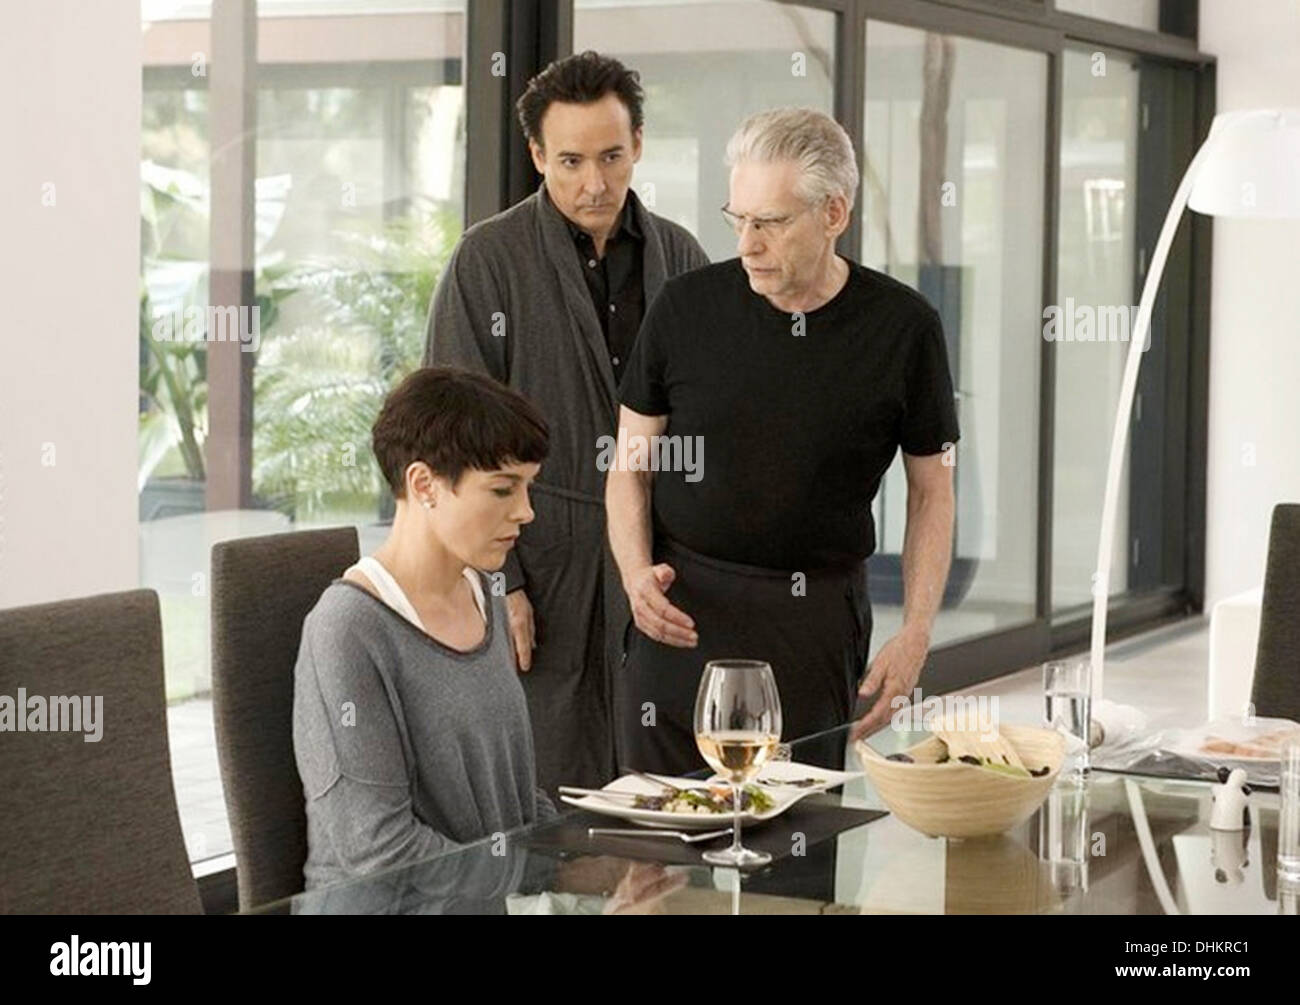 MAPS TO THE STARS 2014 Entertainment One film with Olivia Williams and John Cusack in middle - Stock Image